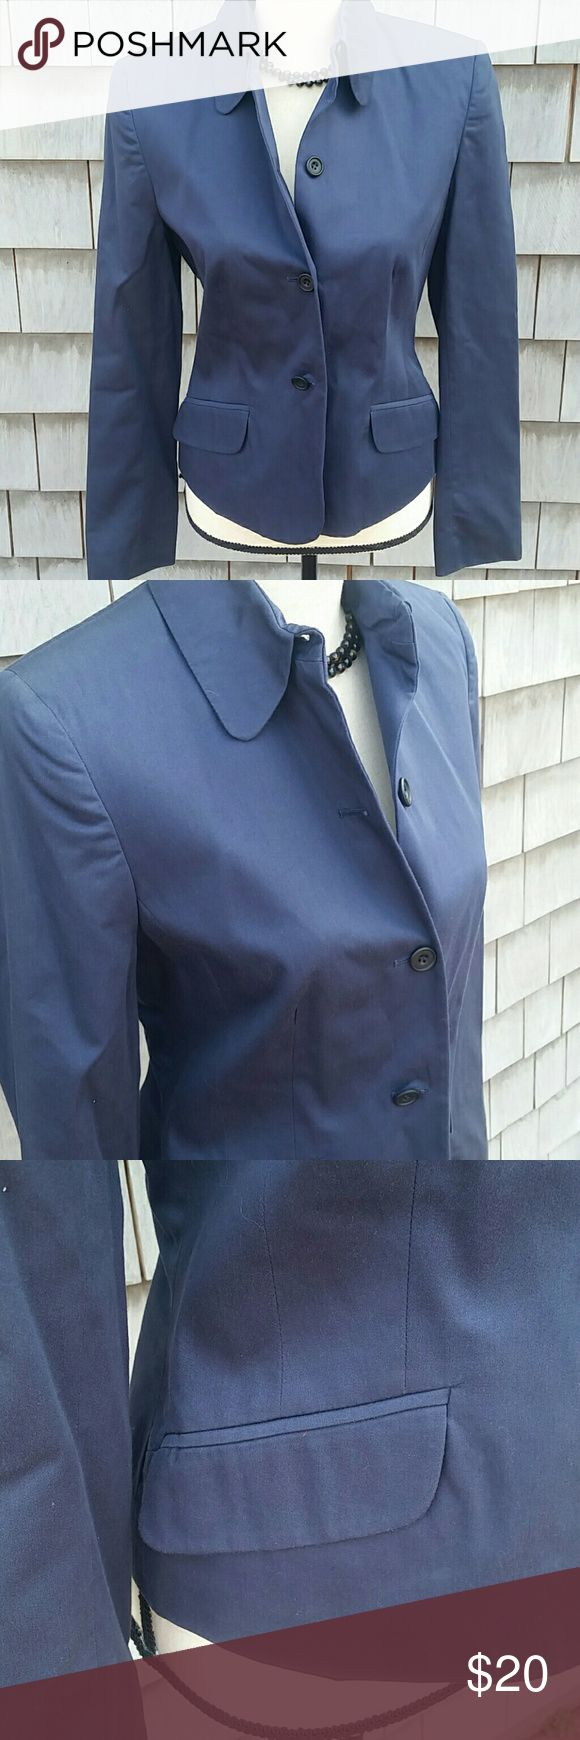 French Connection Navy Blazer Gorgeous navy blue all cotton fully lined tailored Blazer. Like new no rips or stains just beautiful French Connection  Jackets & Coats Blazers